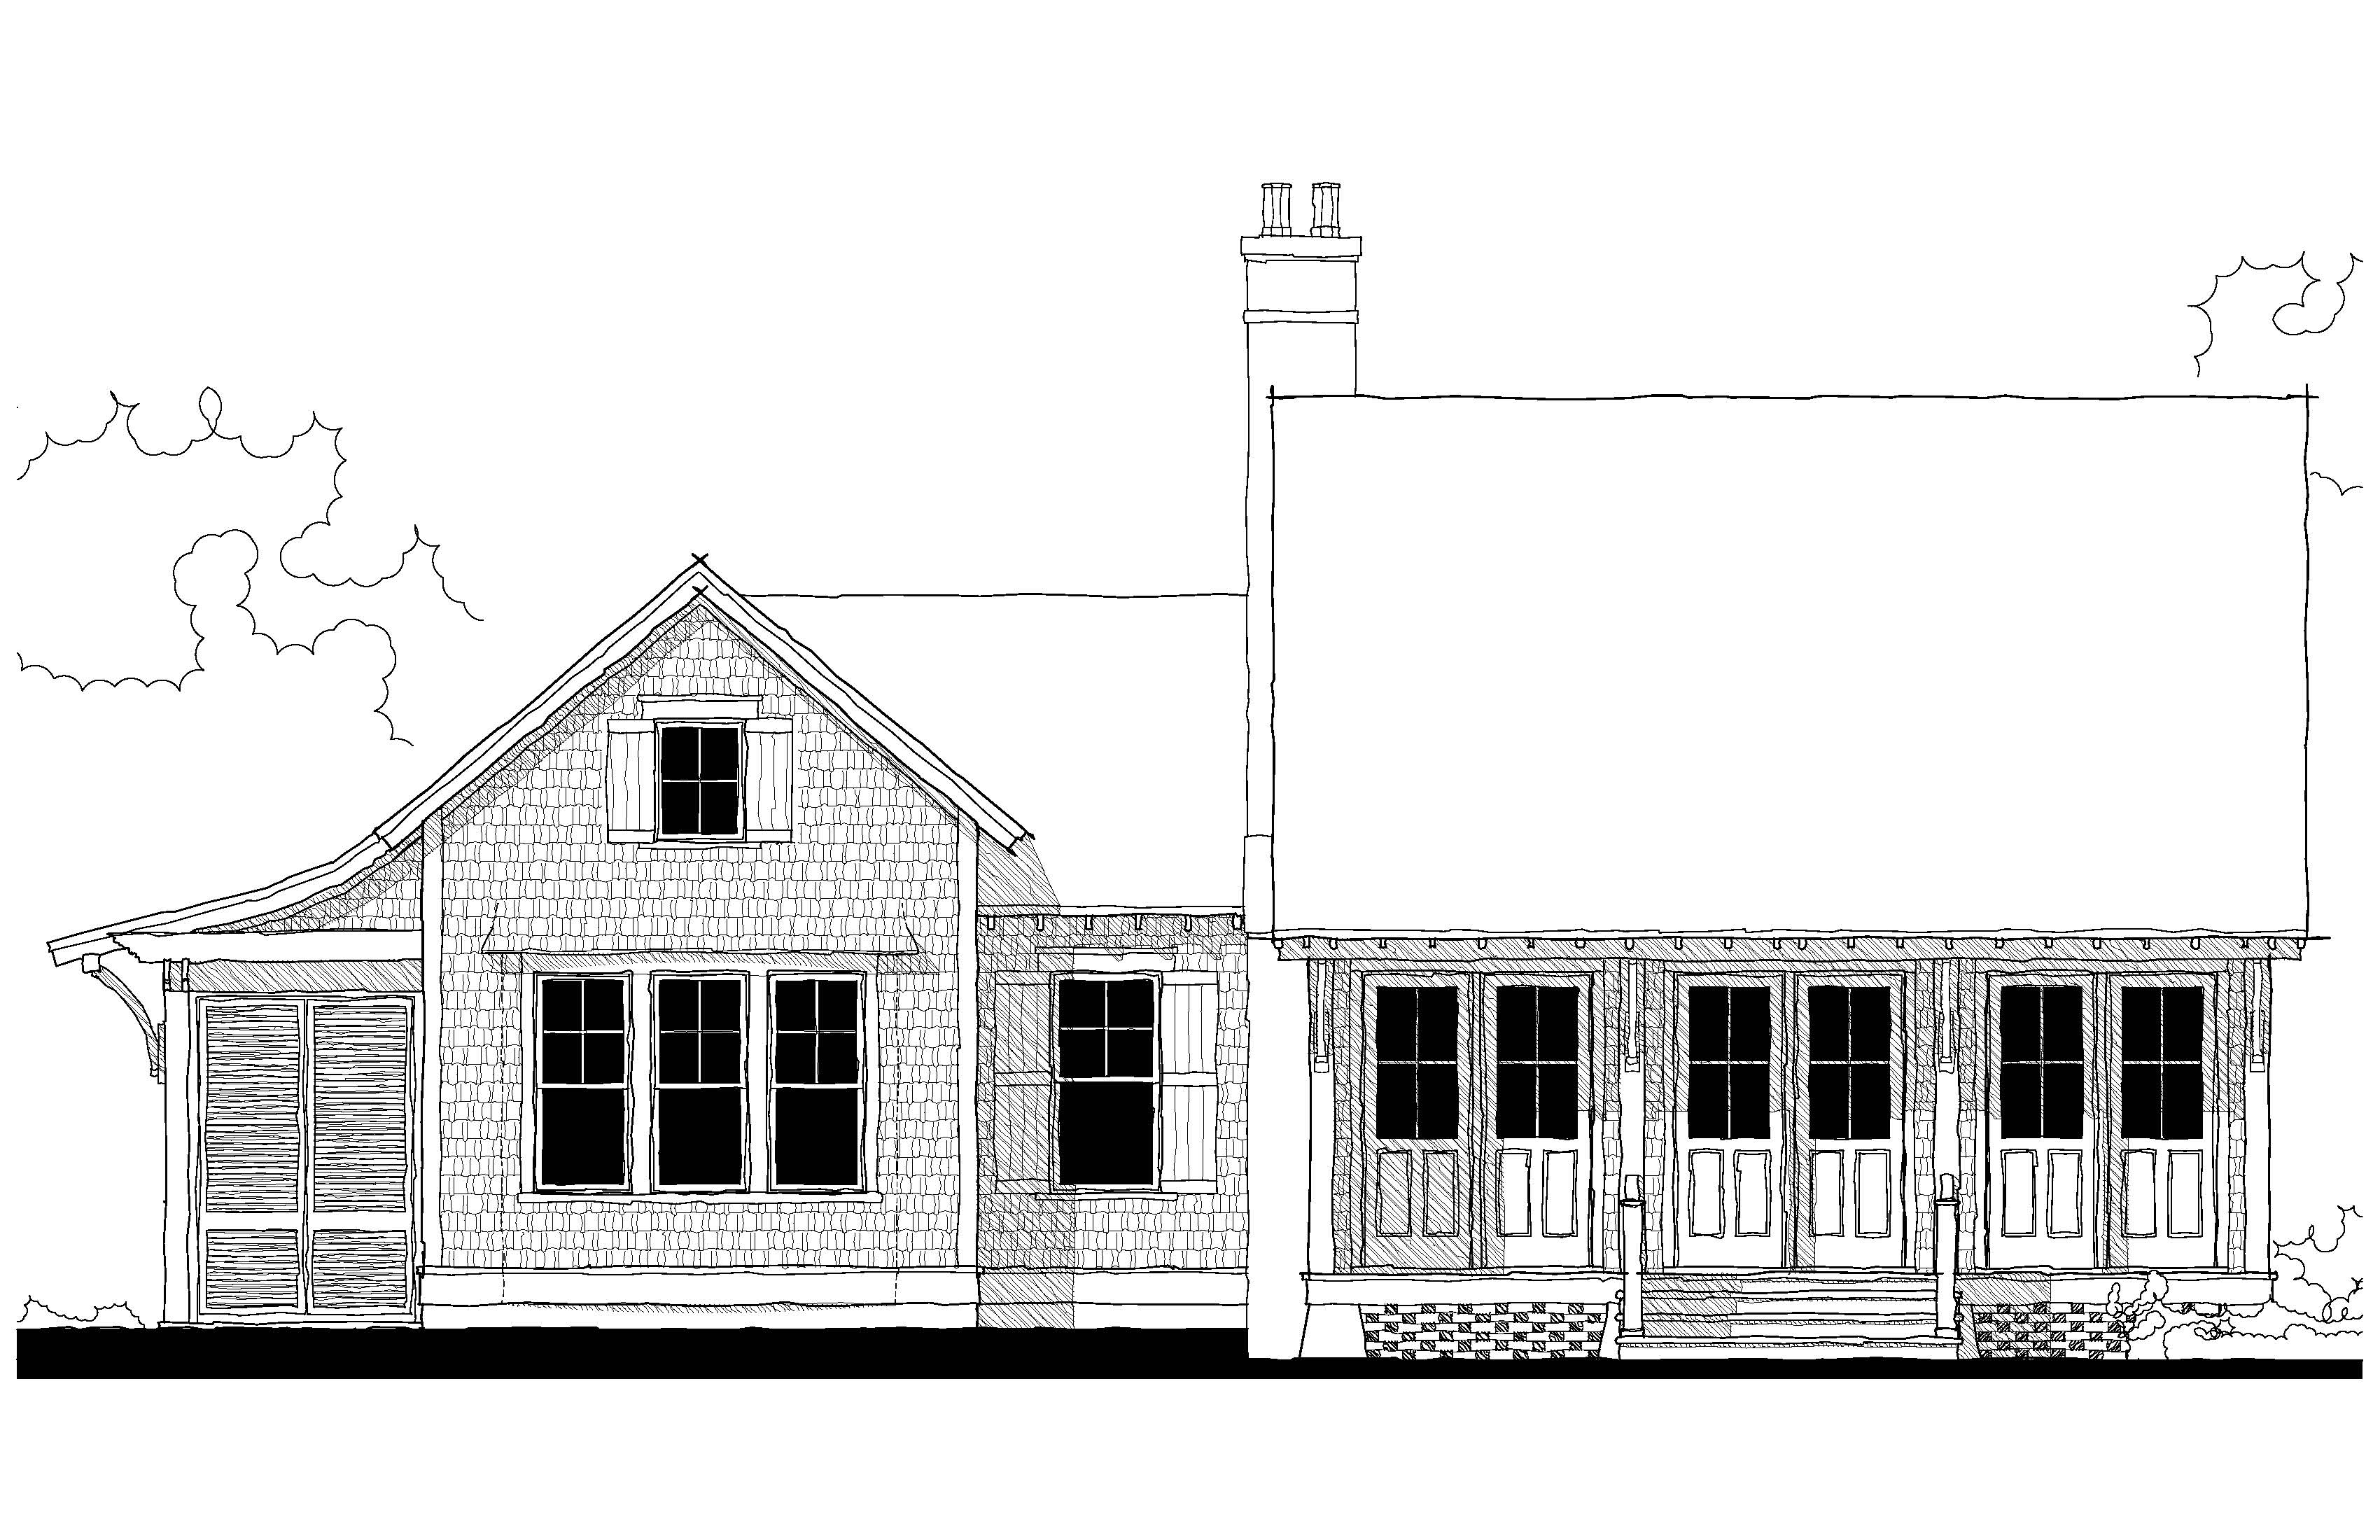 3400x2200 Allison Ramsey Architects Lowcountry Coastal Style Home Design